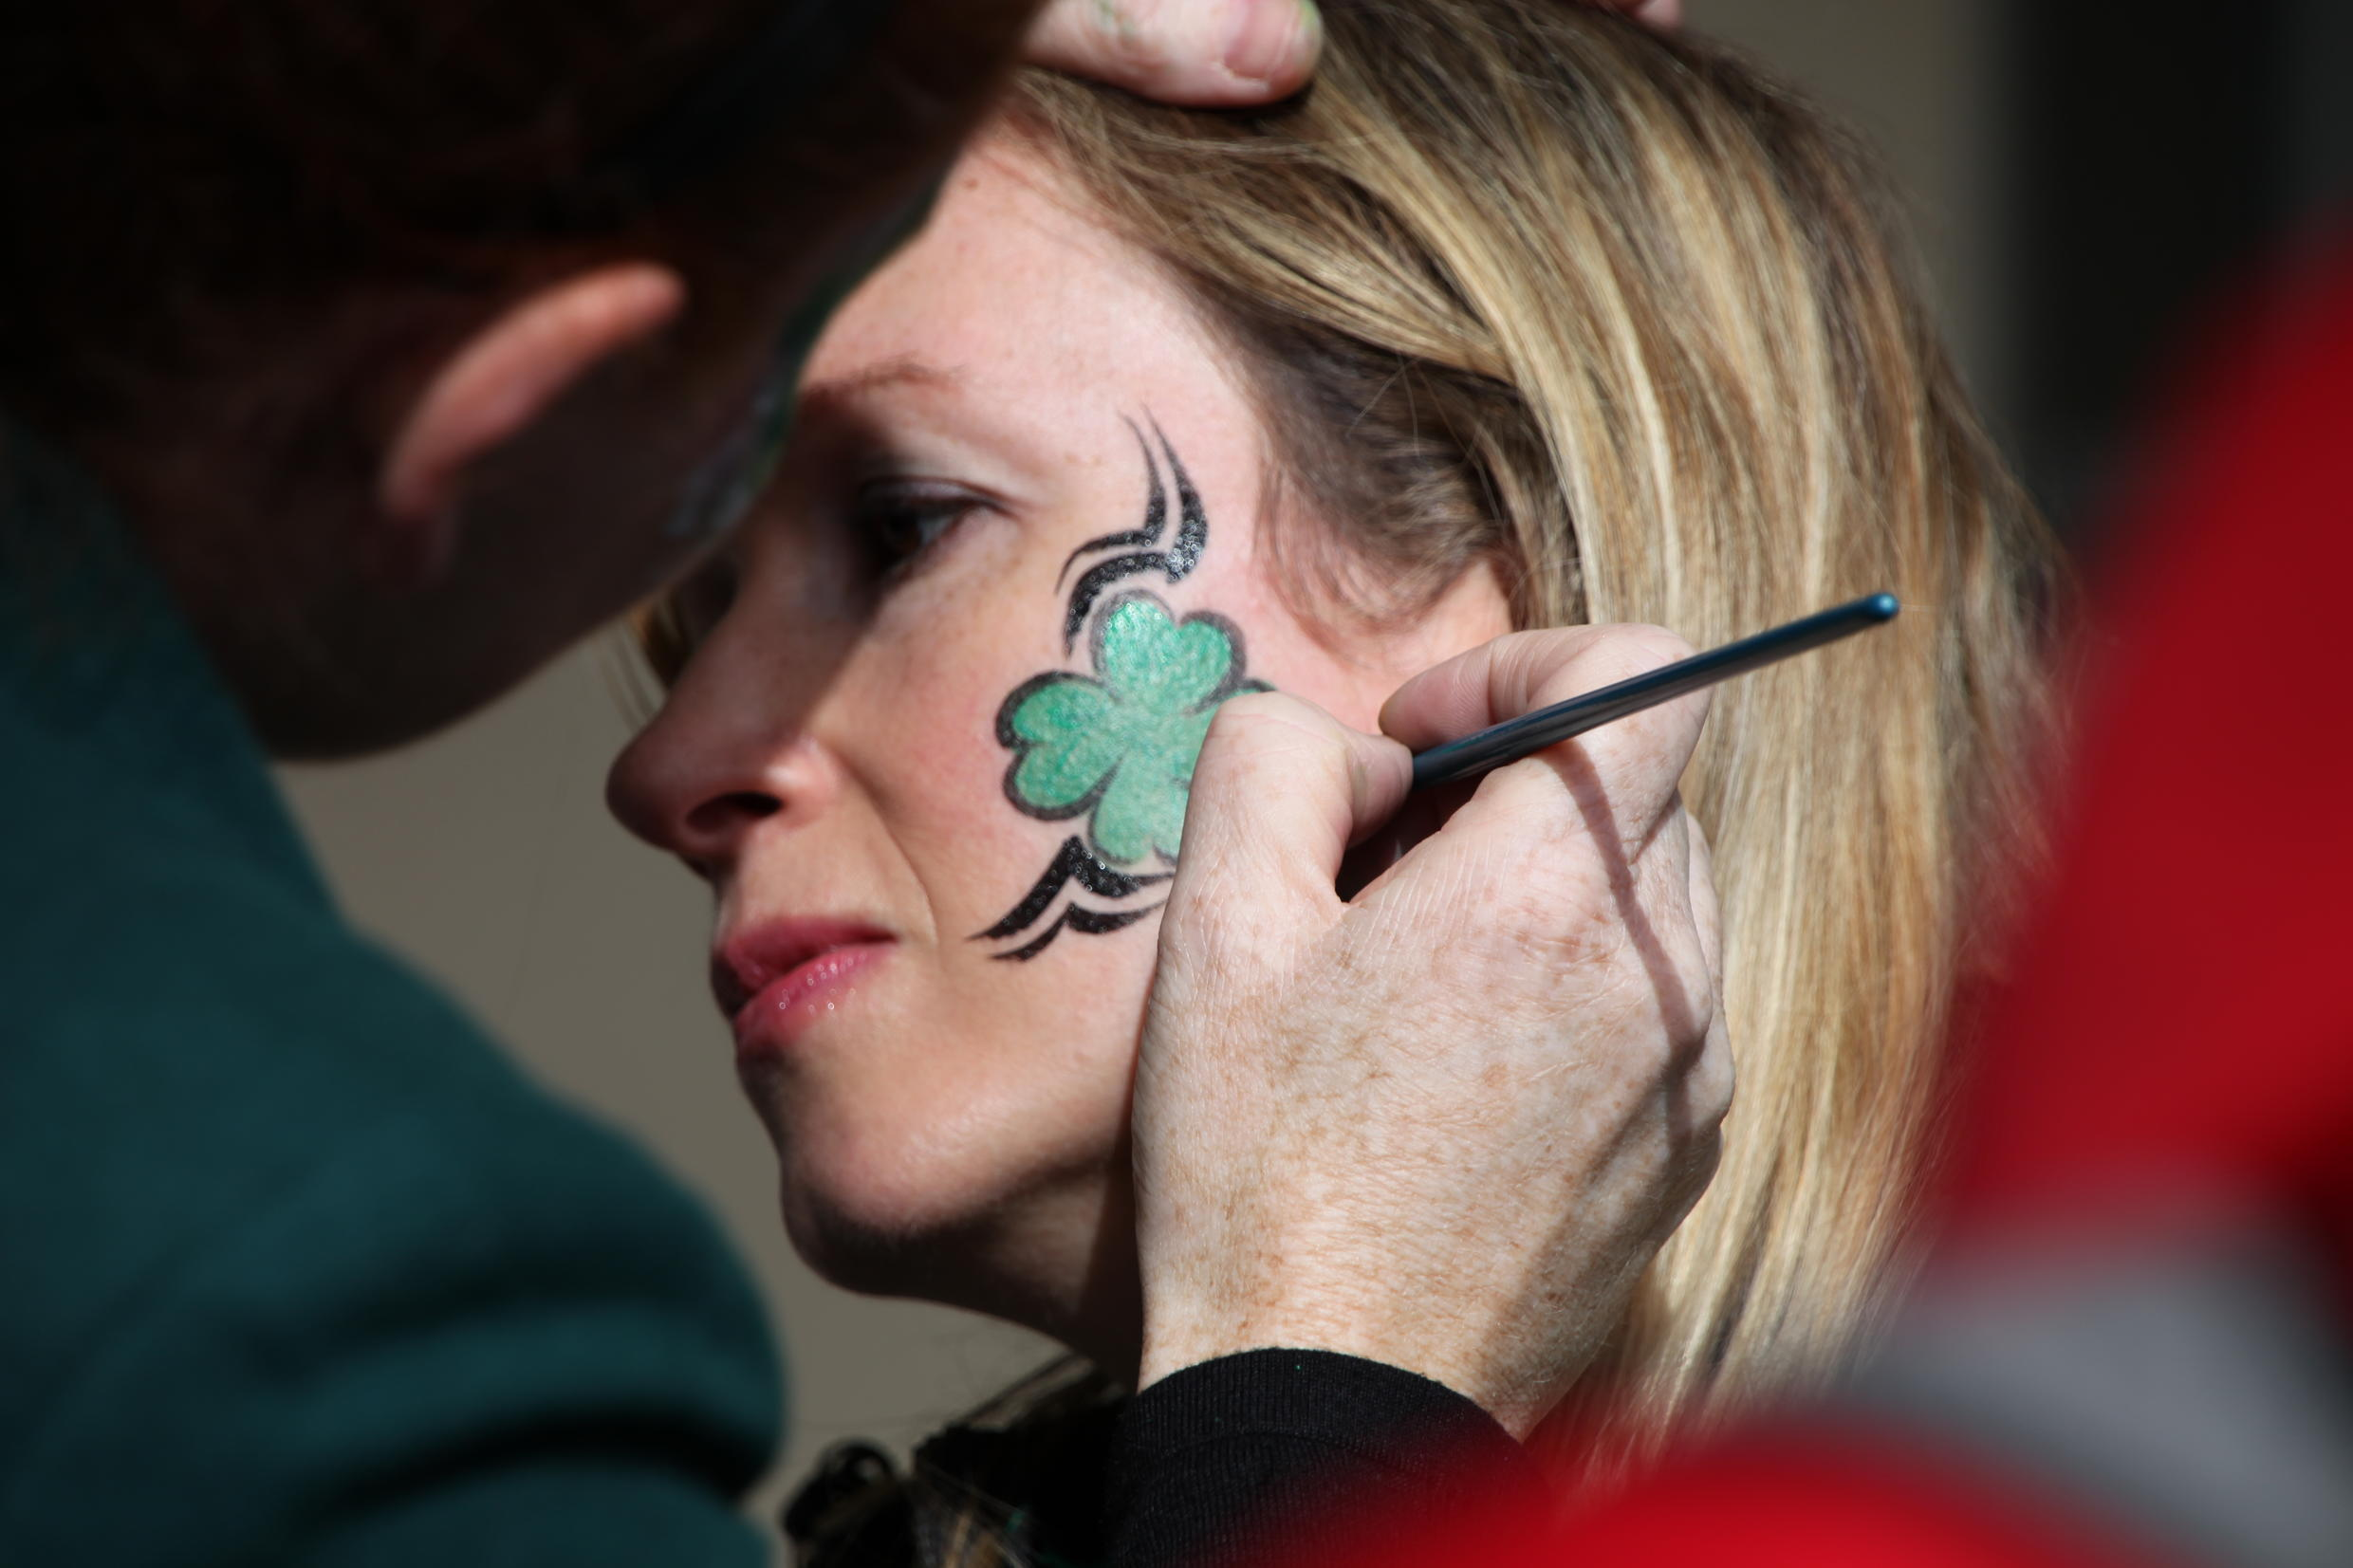 This woman has a shamrock painted on her face -  the three-leaved plant that Saint Patrick is said to have used as a symbol for the Holy Trinity